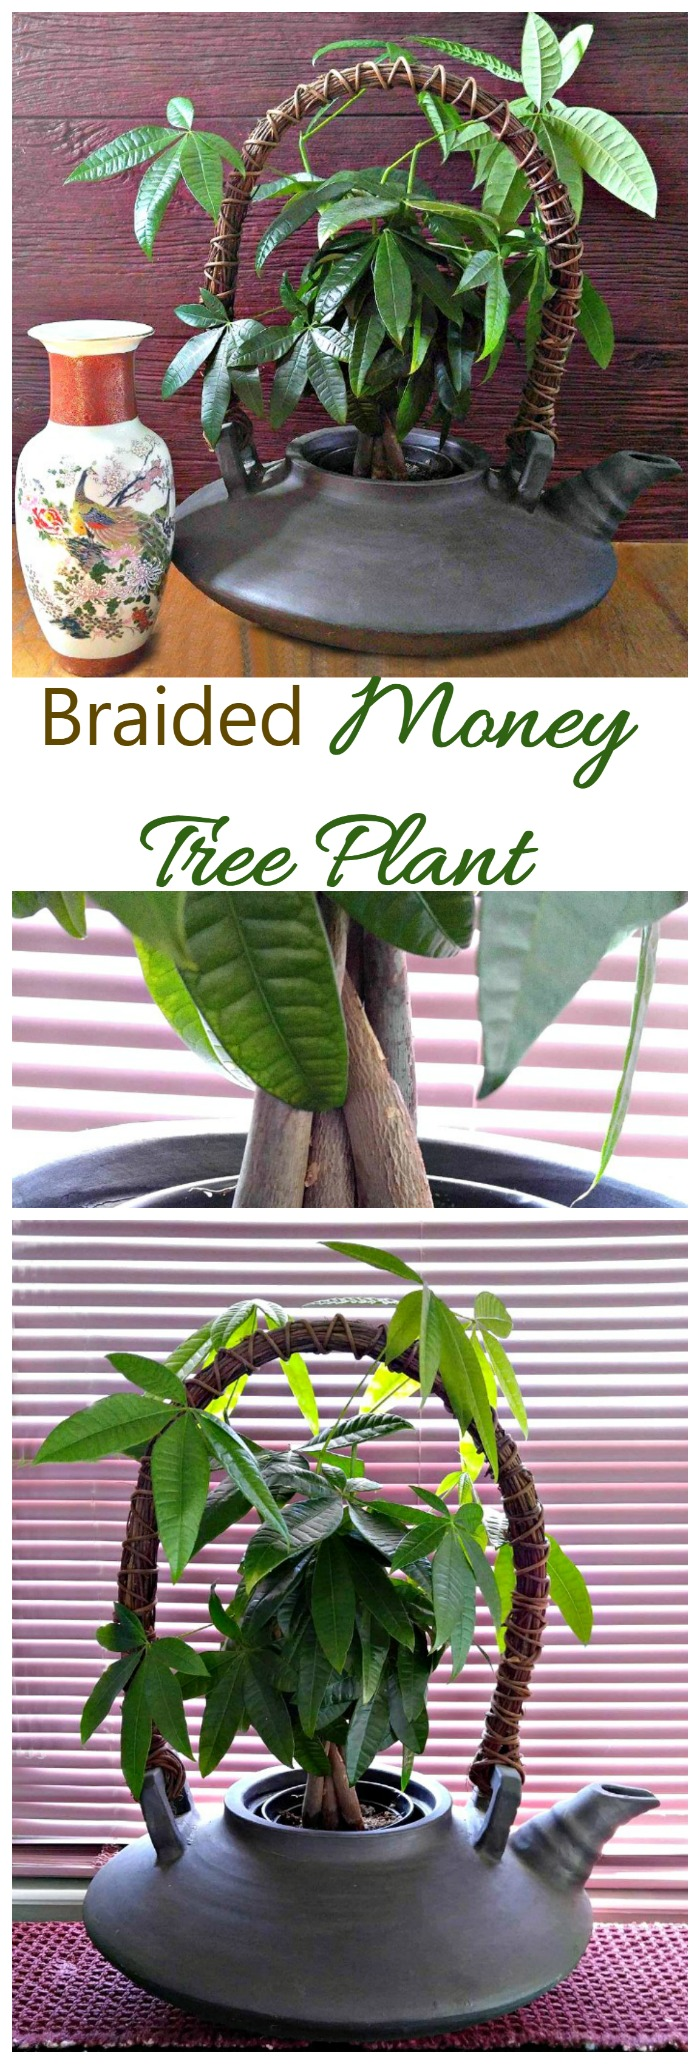 The Braided Money Tree Plant is a hardy and easy to grow indoor plant. It is normally grown with a braided trunk and is thought to bring good luck to the home. See my tips for growing this pretty plant on thegardeningcook.com